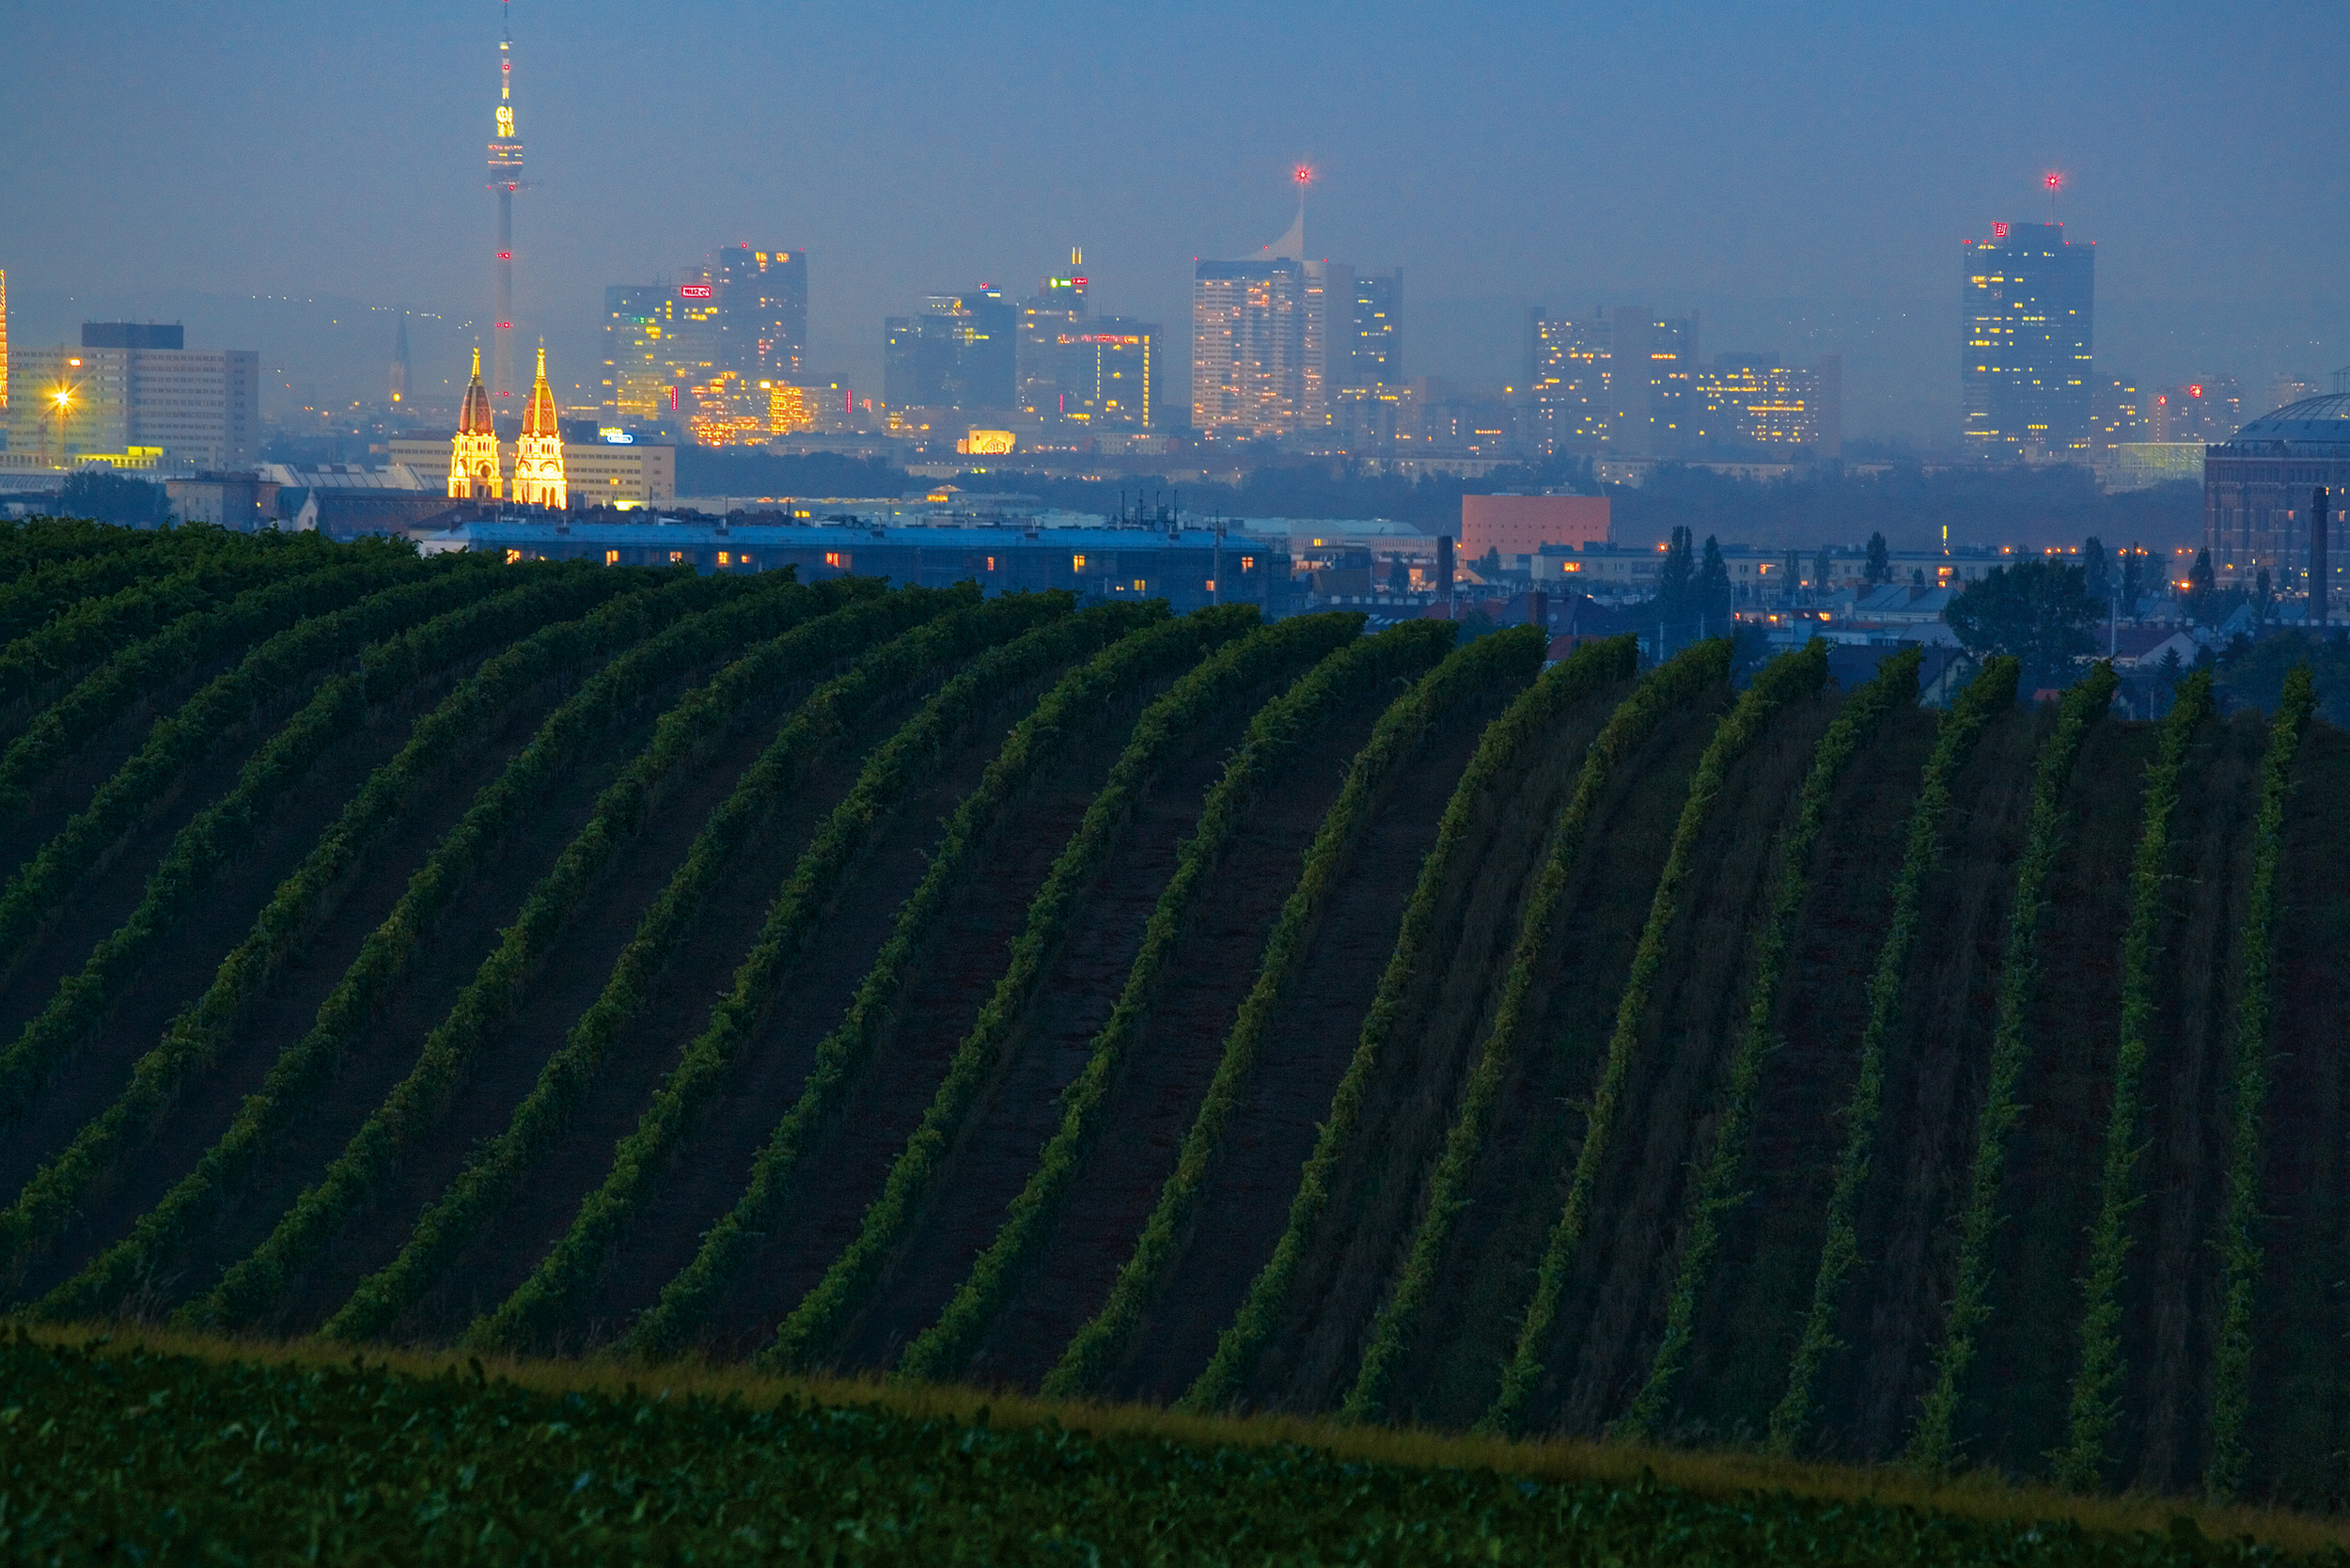 Nighttime Shot of a Vineyard and the City of Vienna